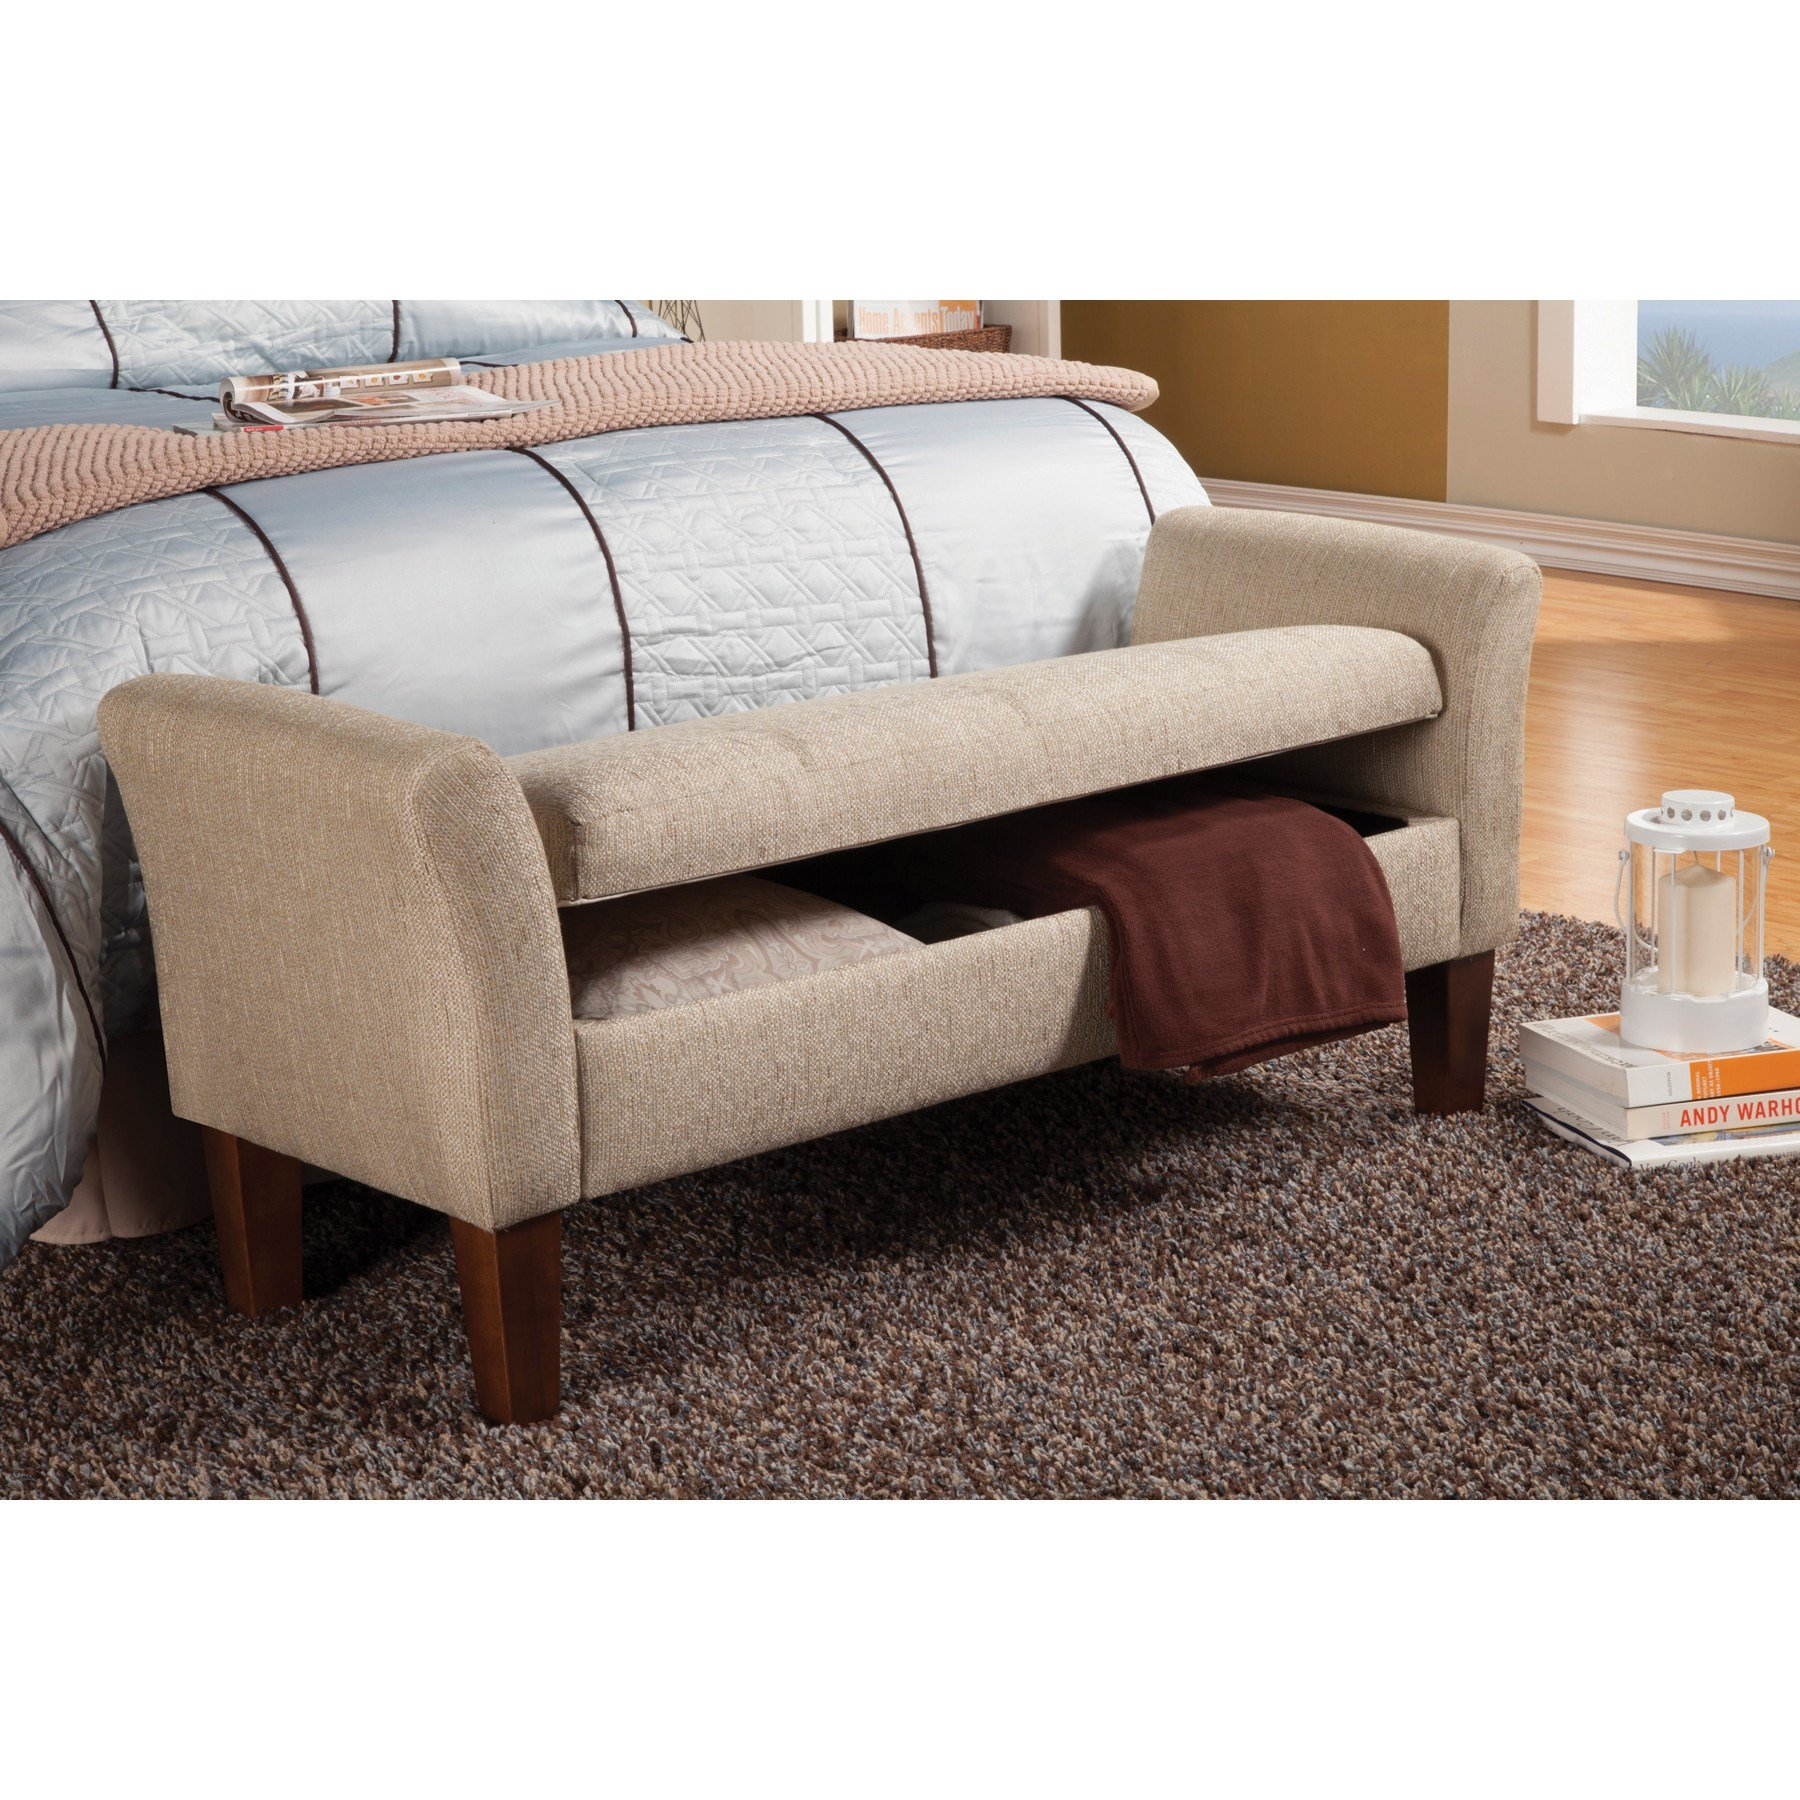 Best Wildon Home ® Upholstered Storage Bedroom Bench Reviews With Pictures